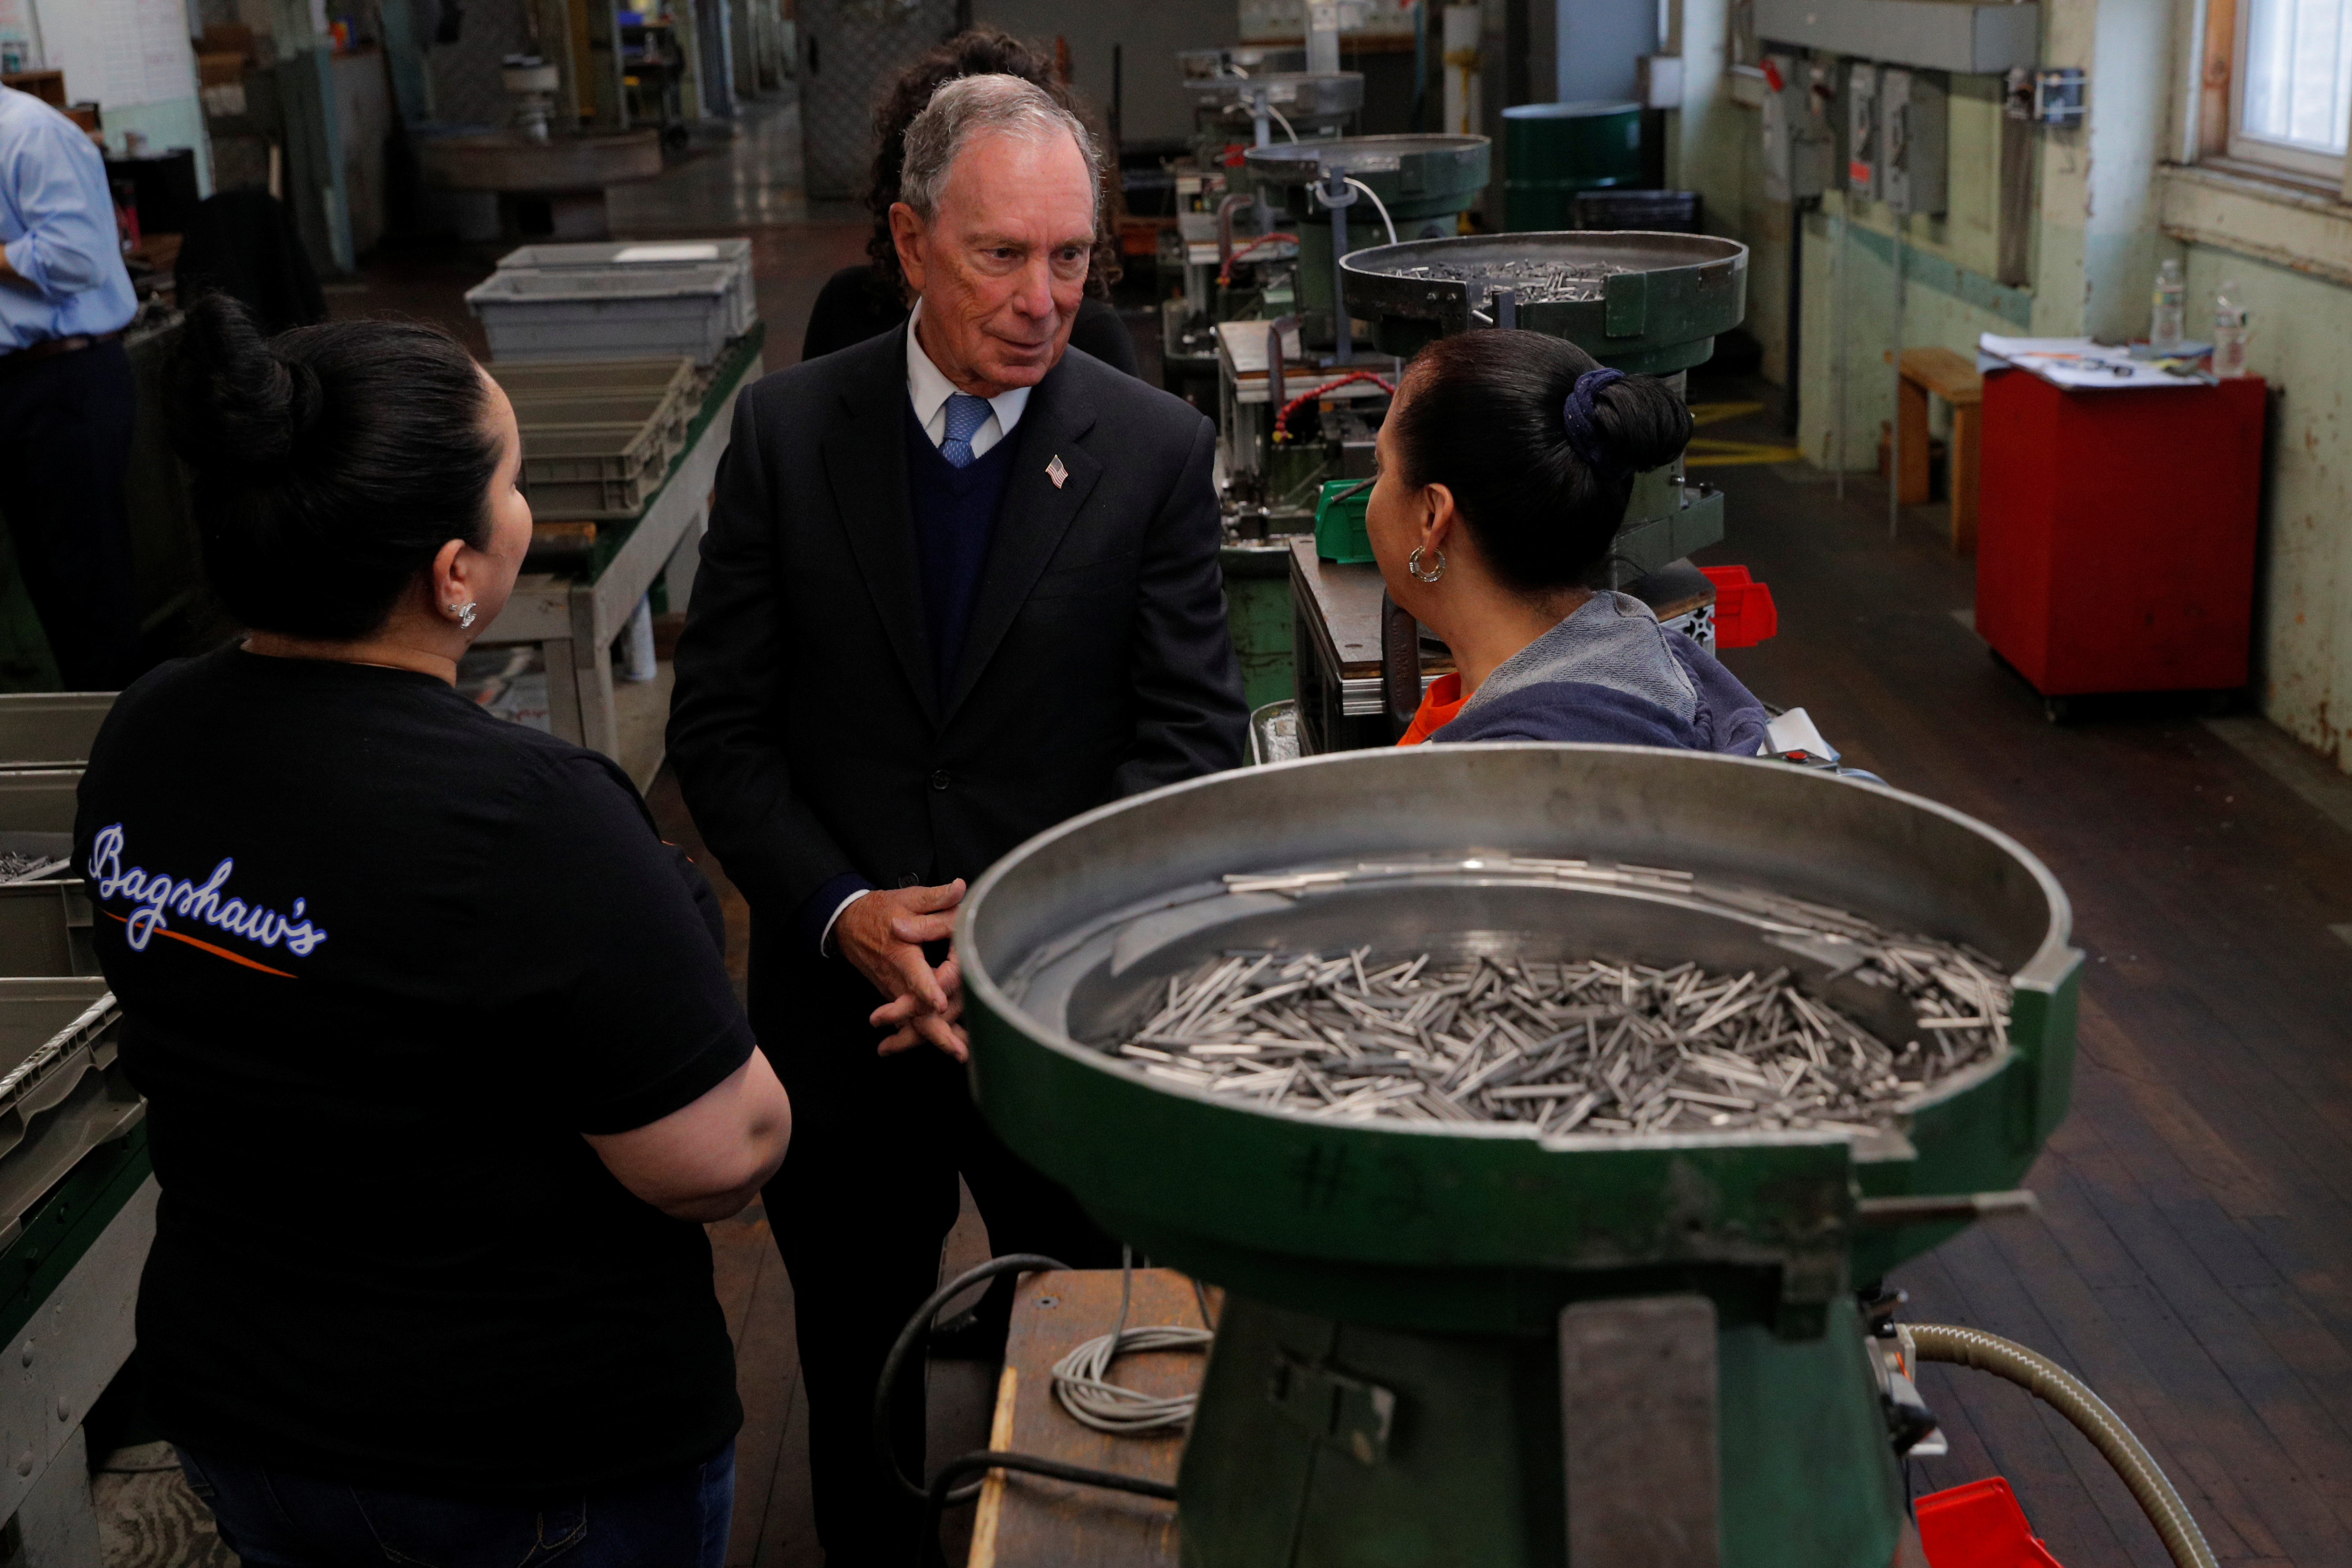 Former New York City Mayor Bloomberg talks to workers during a tour of WH Bagshaw Company in Nashua